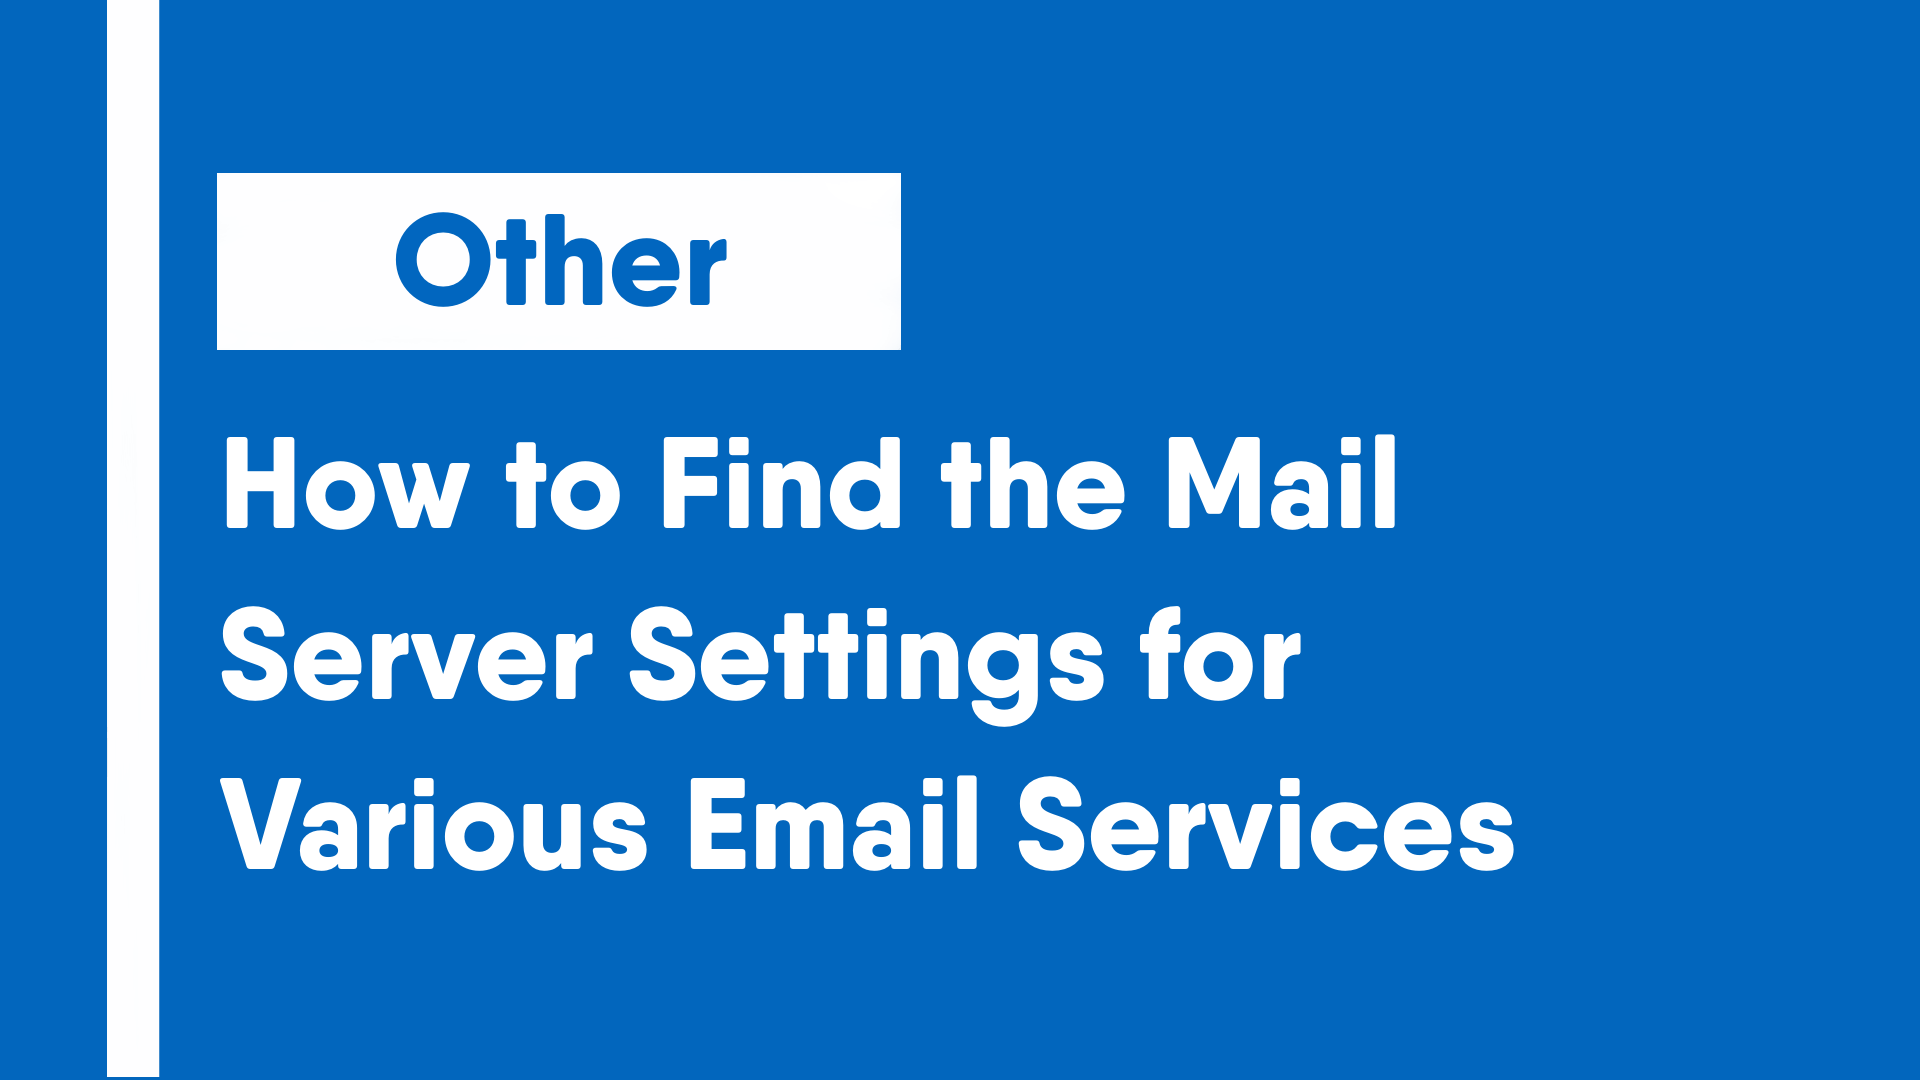 How to Find the Mail Server Settings for Various Email Services